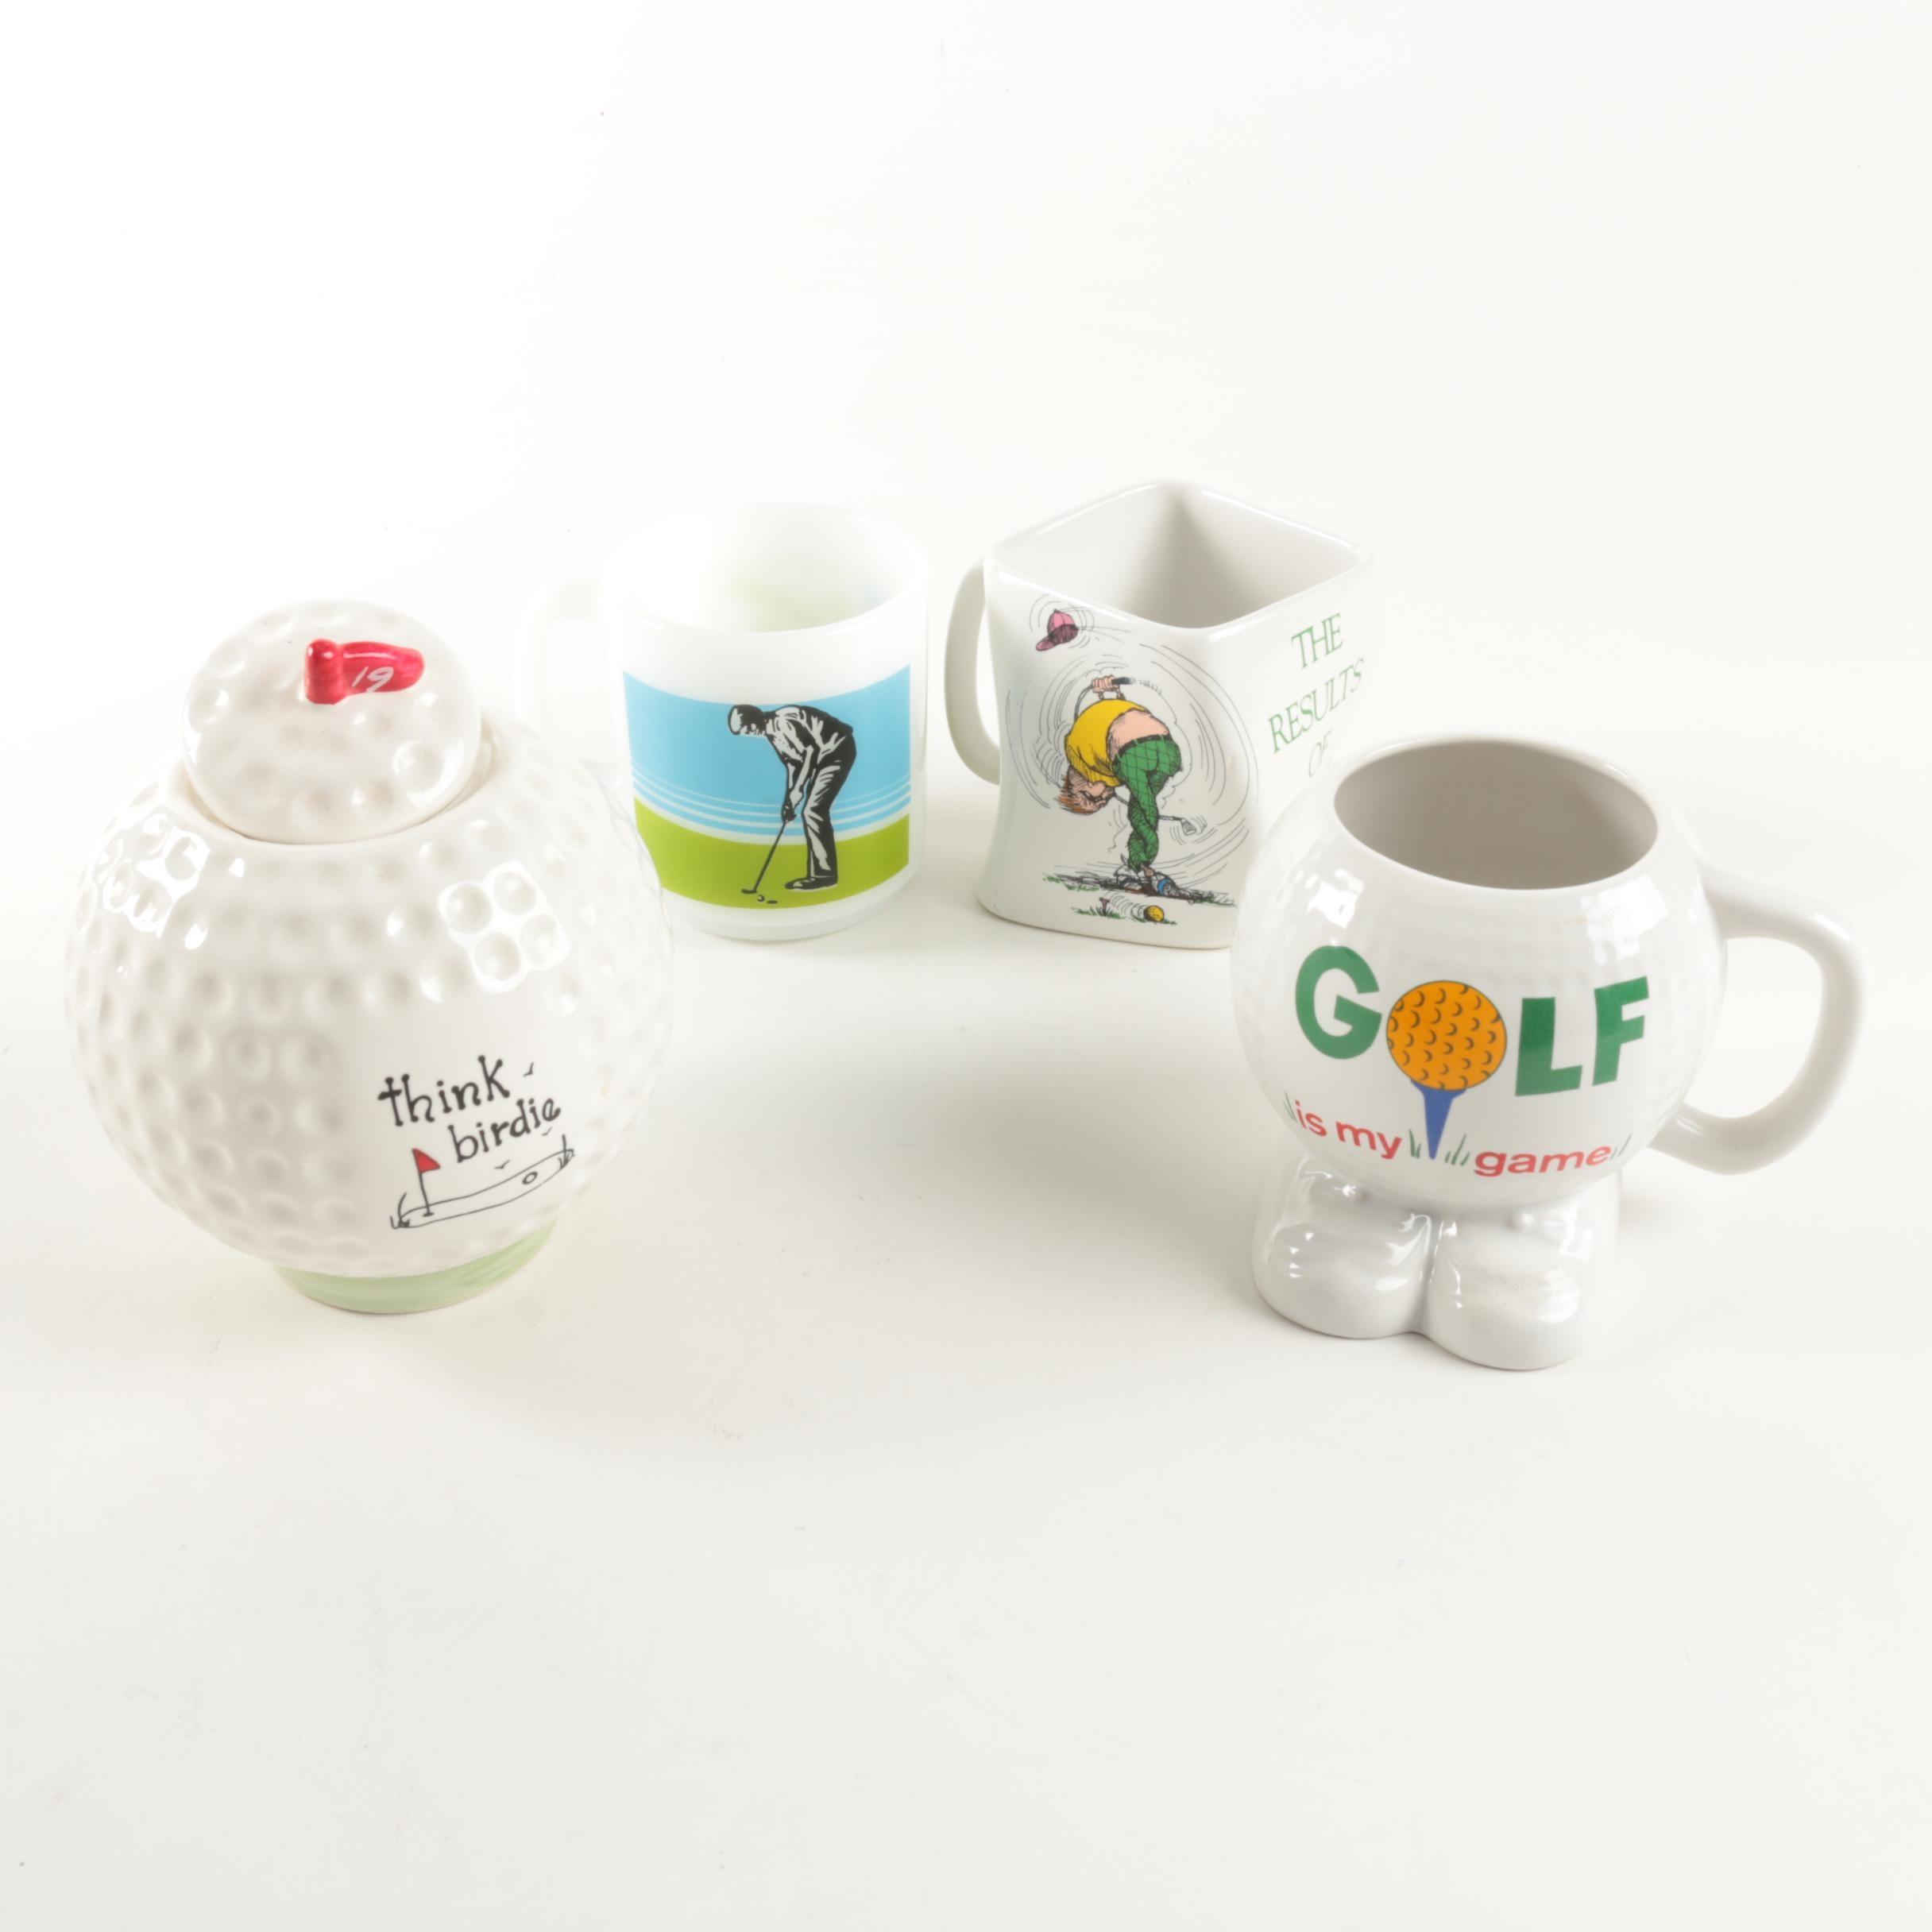 Golf Themed Mugs and Jar